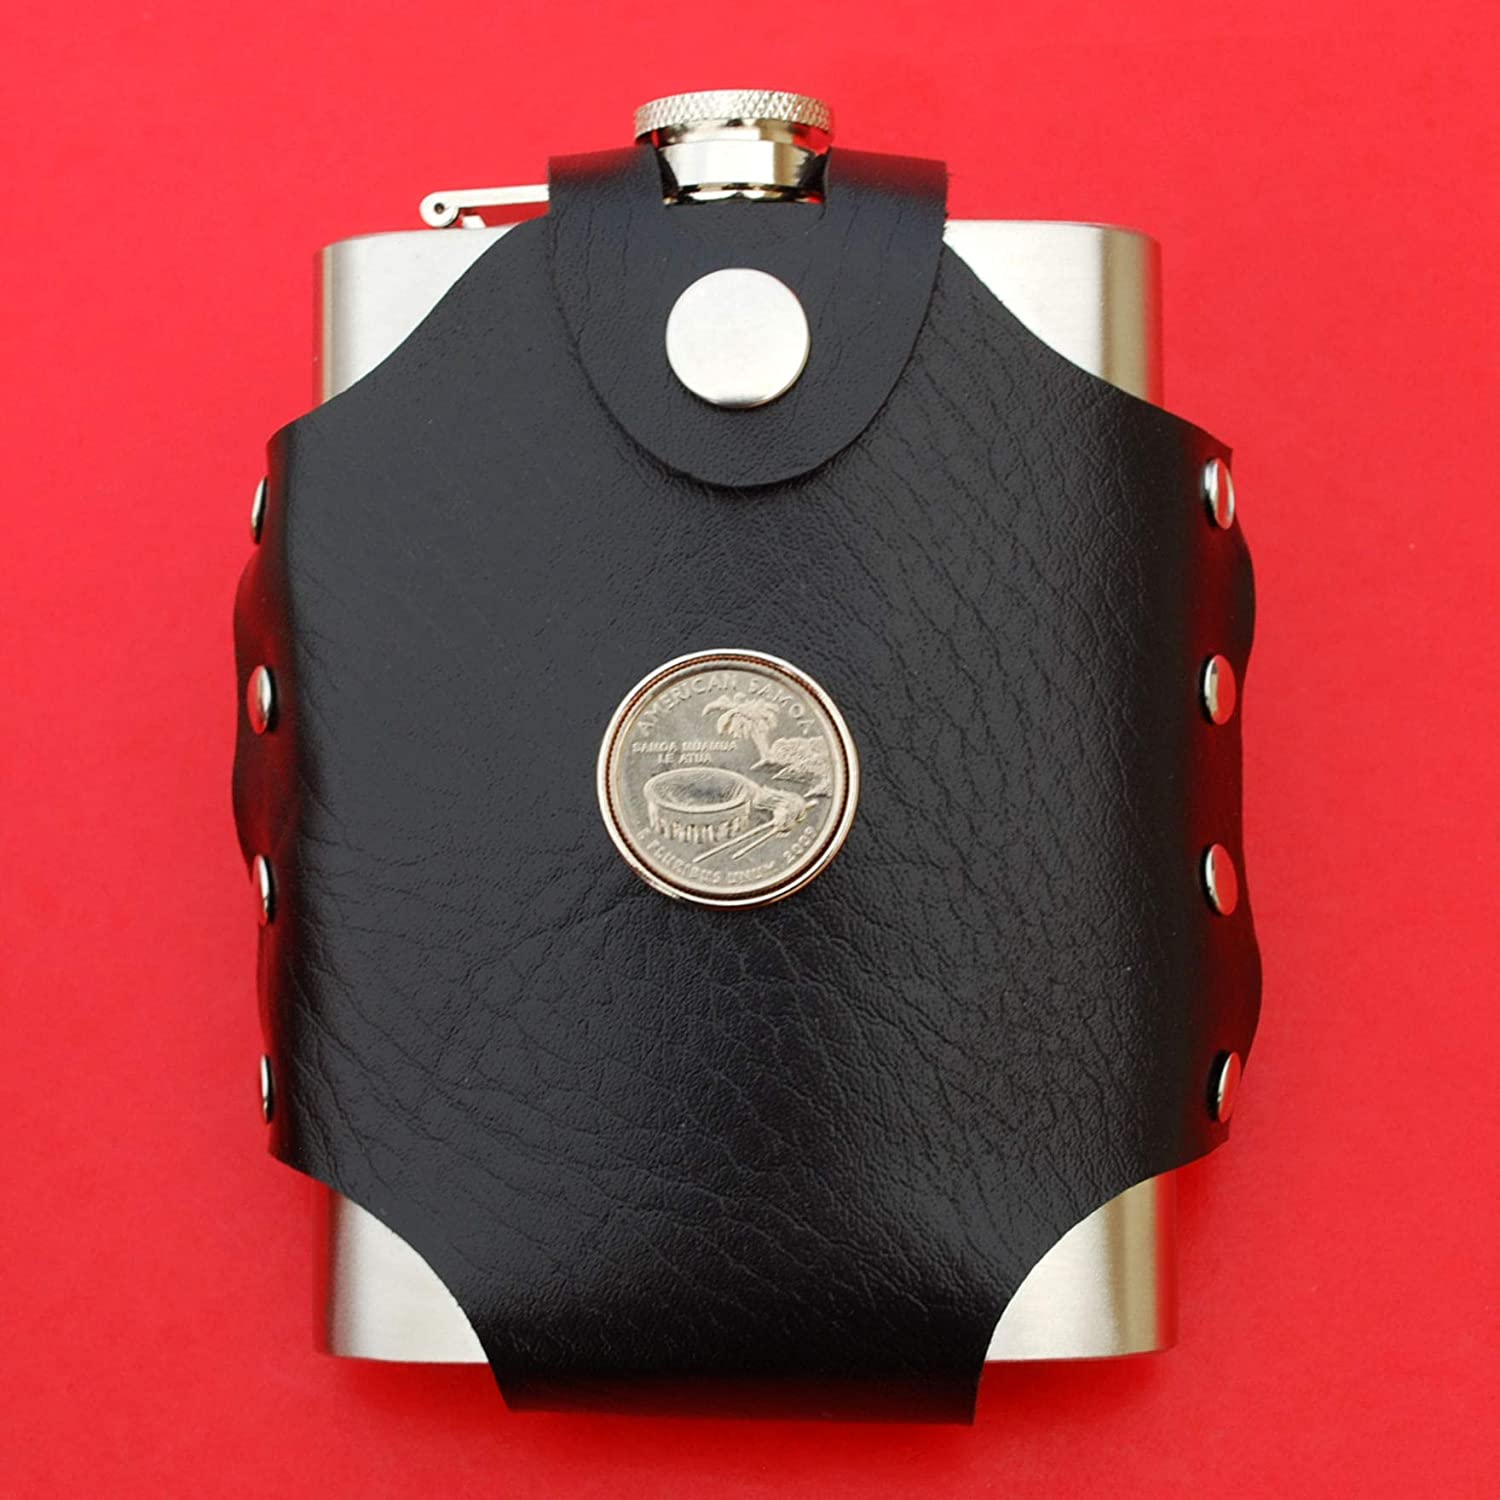 DC /& Territories US 2009 American Samoa Quarter BU Uncirculated Coin Leak Proof Black PU Leather Wrapped Stainless Steel 8 Oz Hip Flask